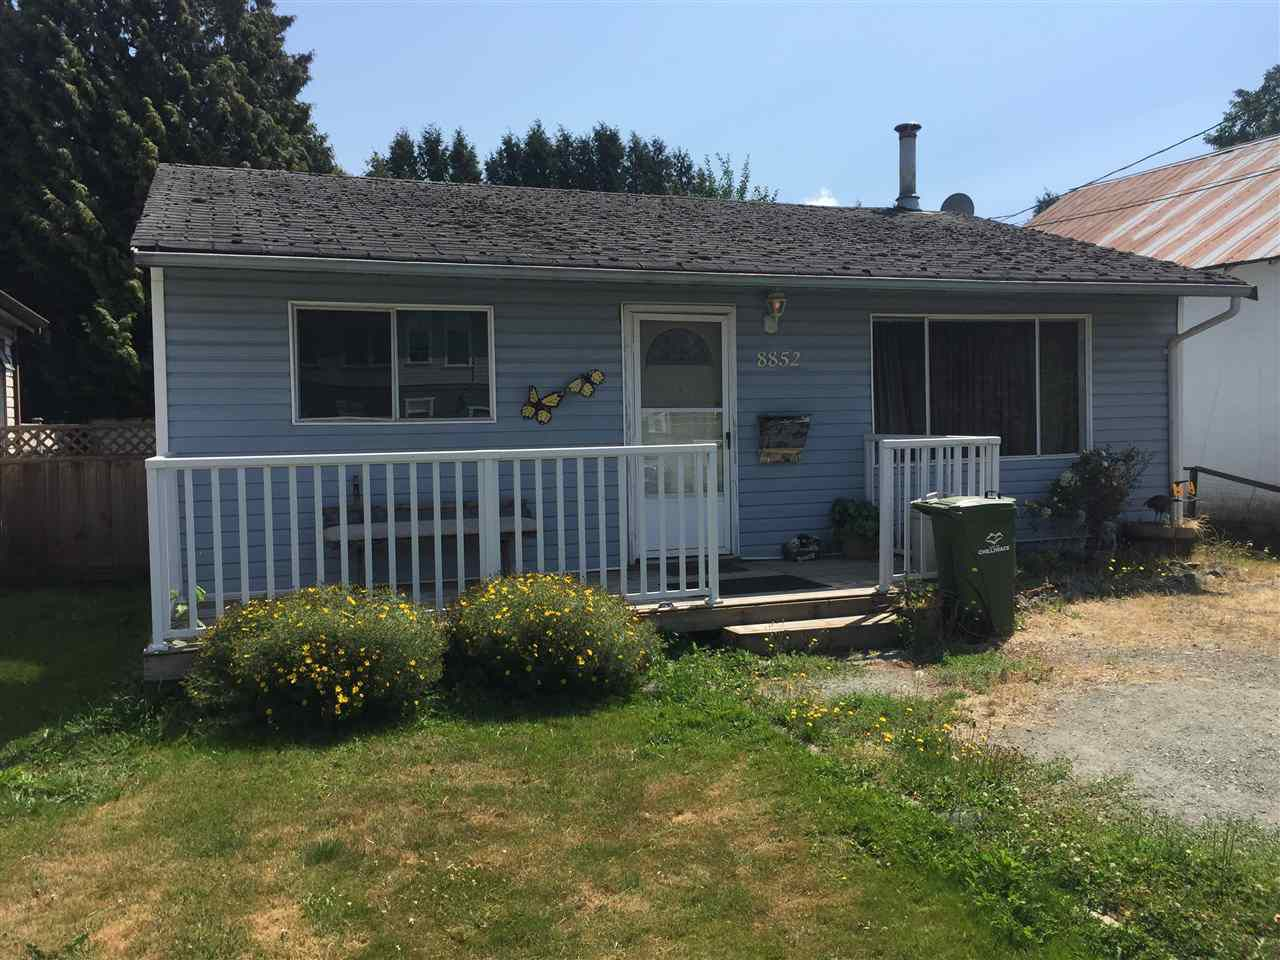 Main Photo: 8852 ELM Drive in Chilliwack: Chilliwack E Young-Yale House for sale : MLS®# R2240532